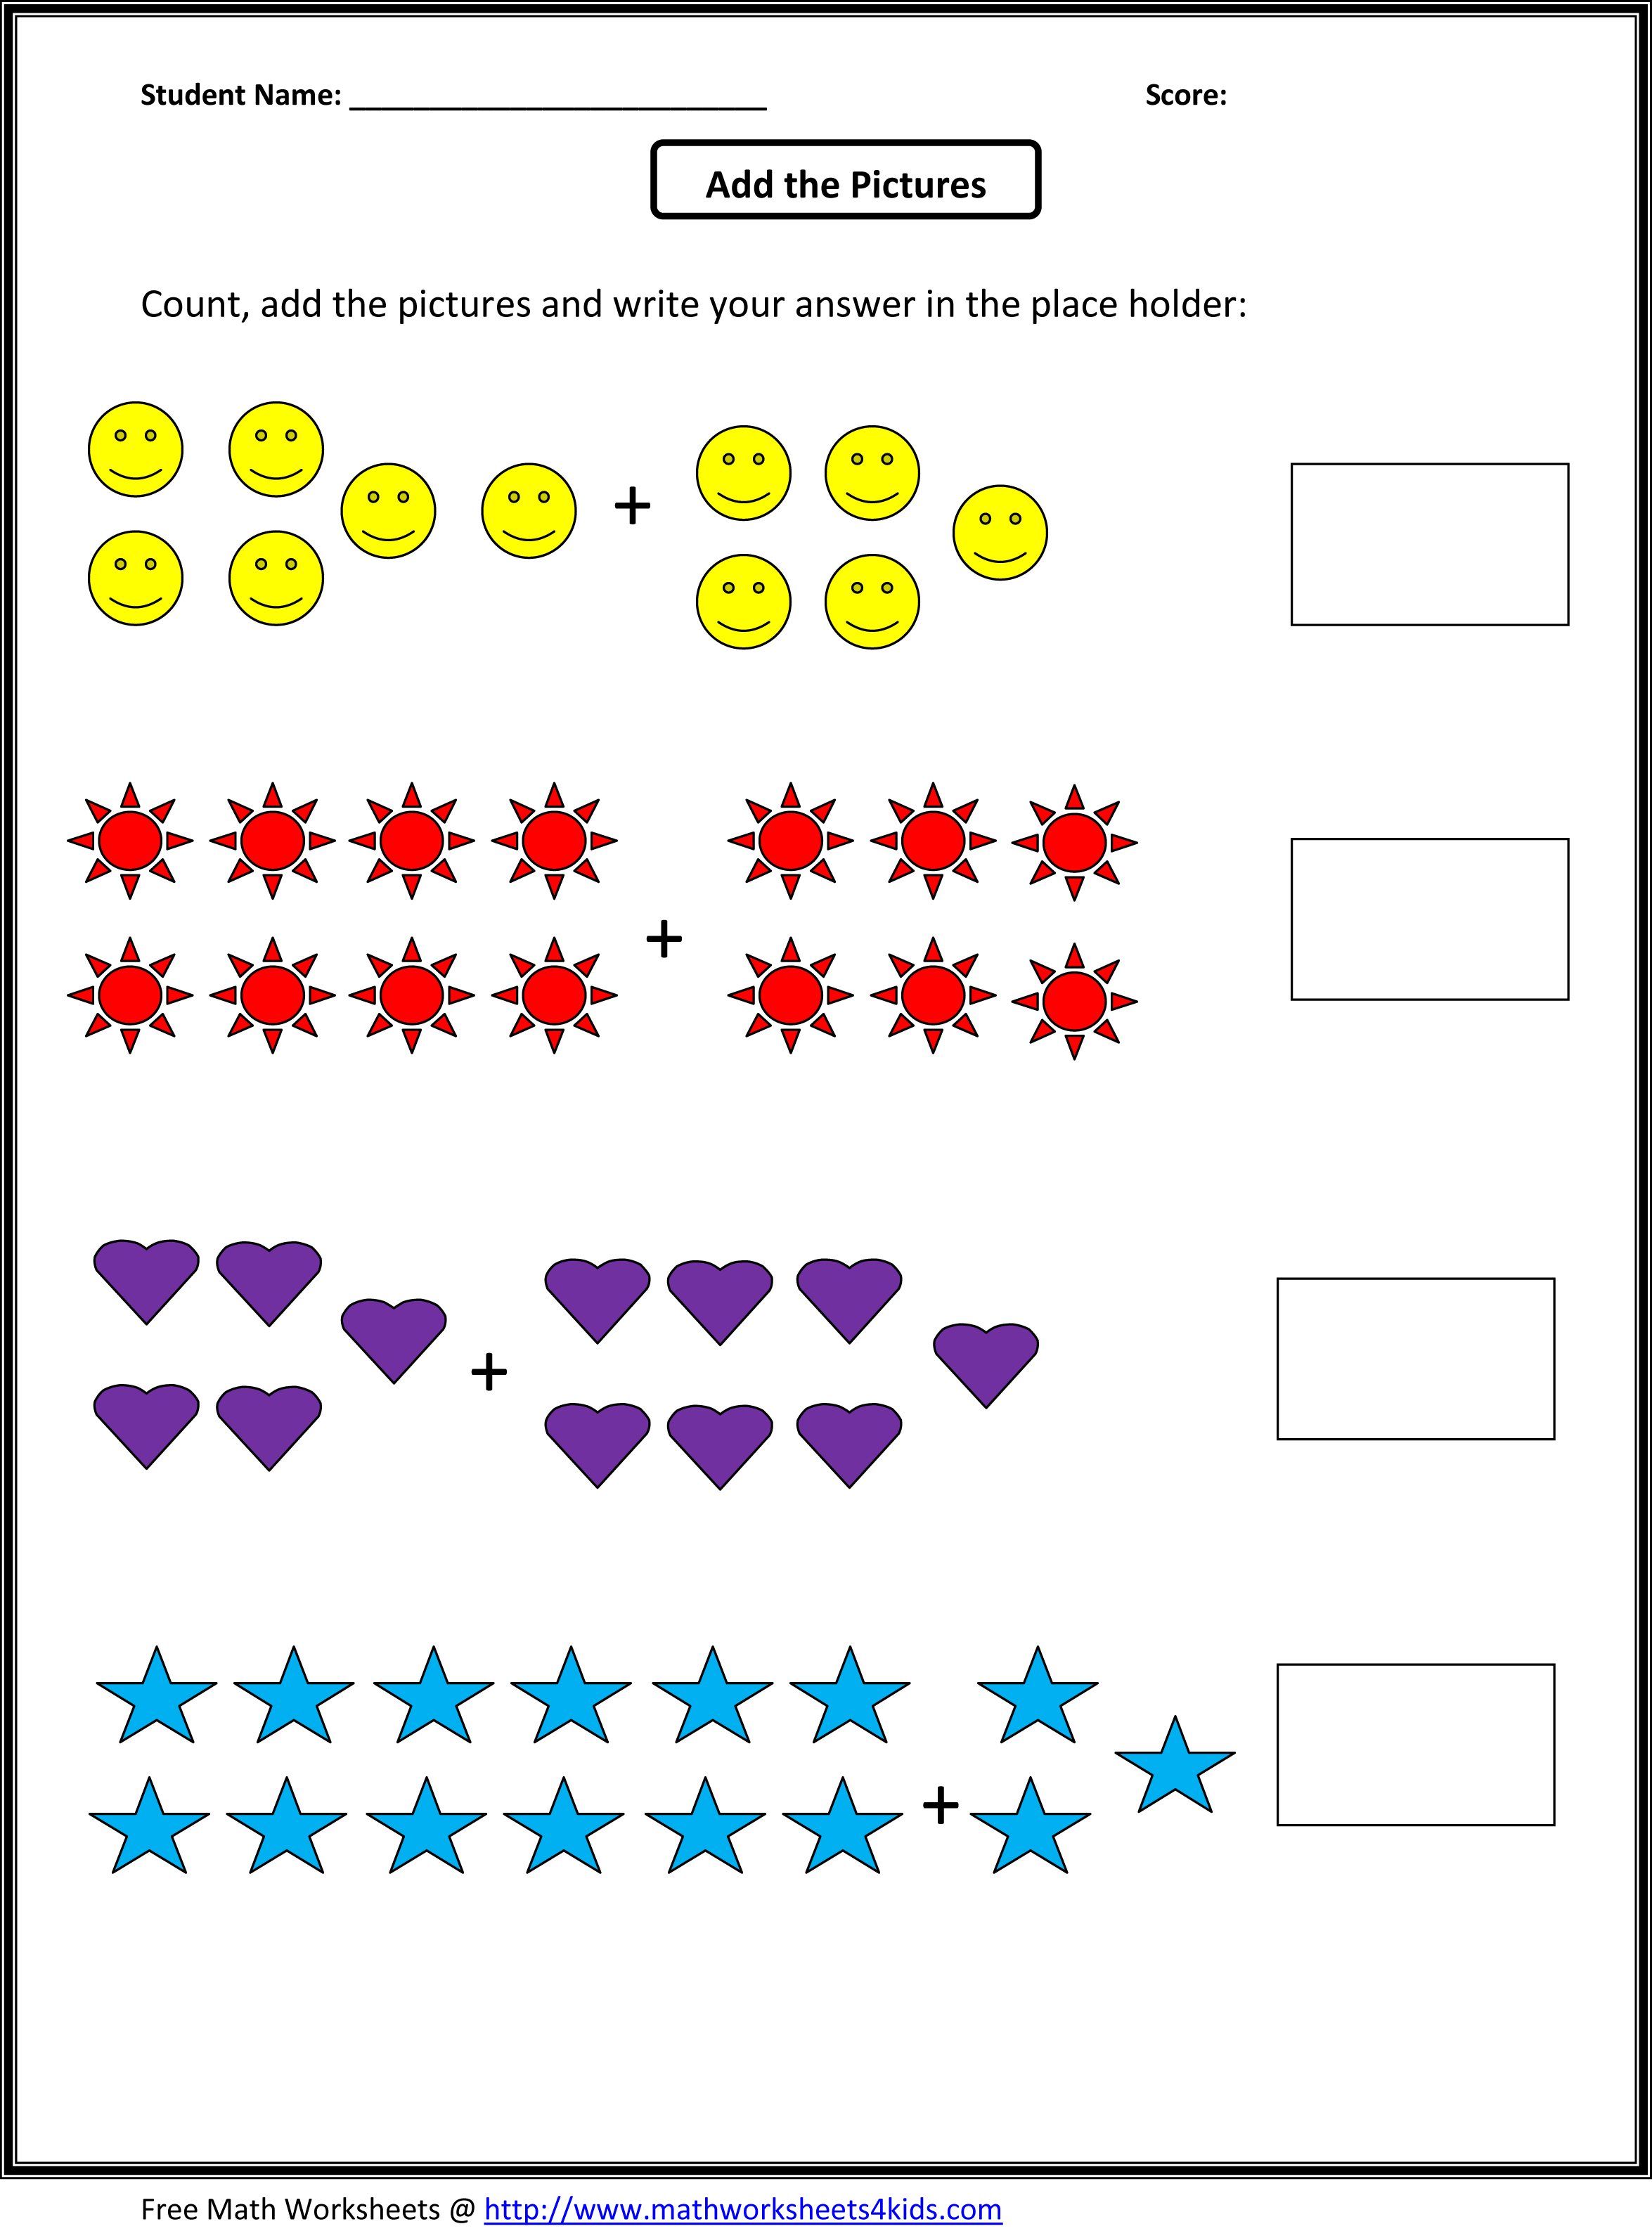 Proatmealus  Fascinating Grade  Maths Worksheet  Reocurent With Heavenly Math Worksheets For St Grade Free  Reocurent With Agreeable Gene Mutation Worksheet Also Two Digit By One Digit Multiplication Worksheets In Addition Preposition In On Under Worksheets And Odyssey Worksheet Answers As Well As Telugu Aksharalu Worksheets Additionally Reading Comprehension Pdf Worksheet From Reocurentcom With Proatmealus  Heavenly Grade  Maths Worksheet  Reocurent With Agreeable Math Worksheets For St Grade Free  Reocurent And Fascinating Gene Mutation Worksheet Also Two Digit By One Digit Multiplication Worksheets In Addition Preposition In On Under Worksheets From Reocurentcom